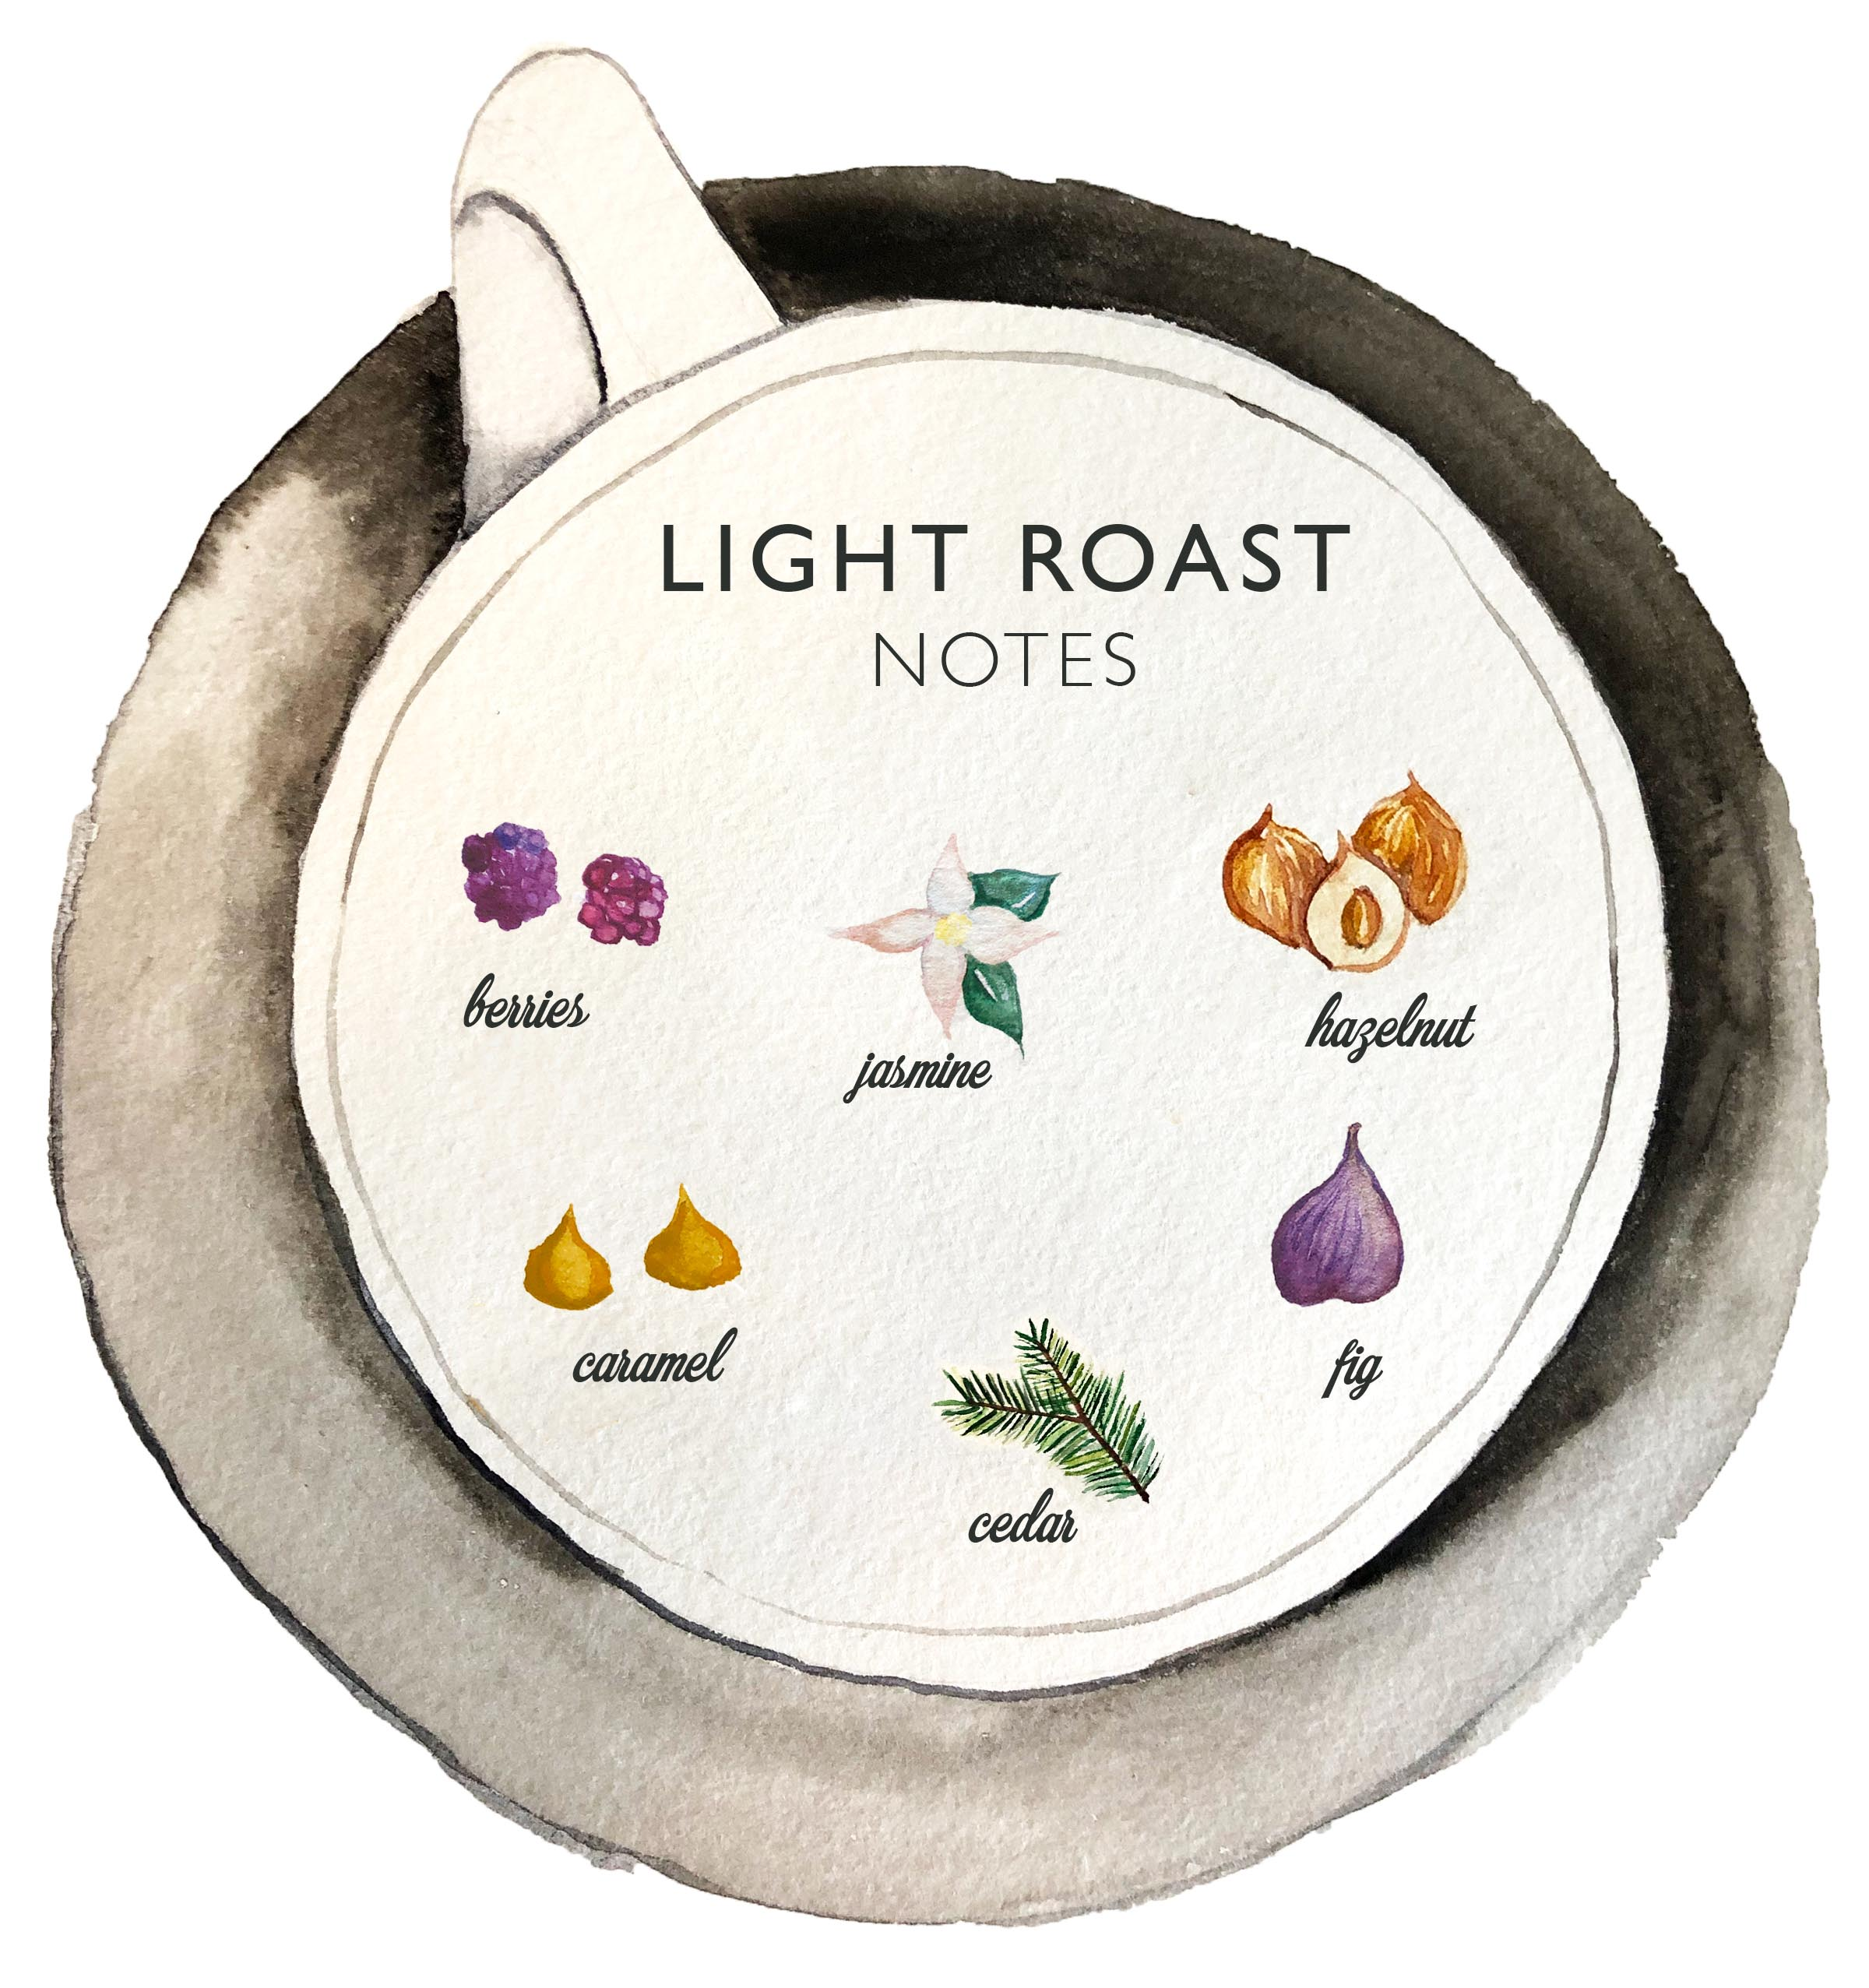 Kona Coffee & Tea's 2019 light roast has notes of berries, jasmine flower, hazelnut, caramel, cedar, and fig. ART: Dayva Keolanui